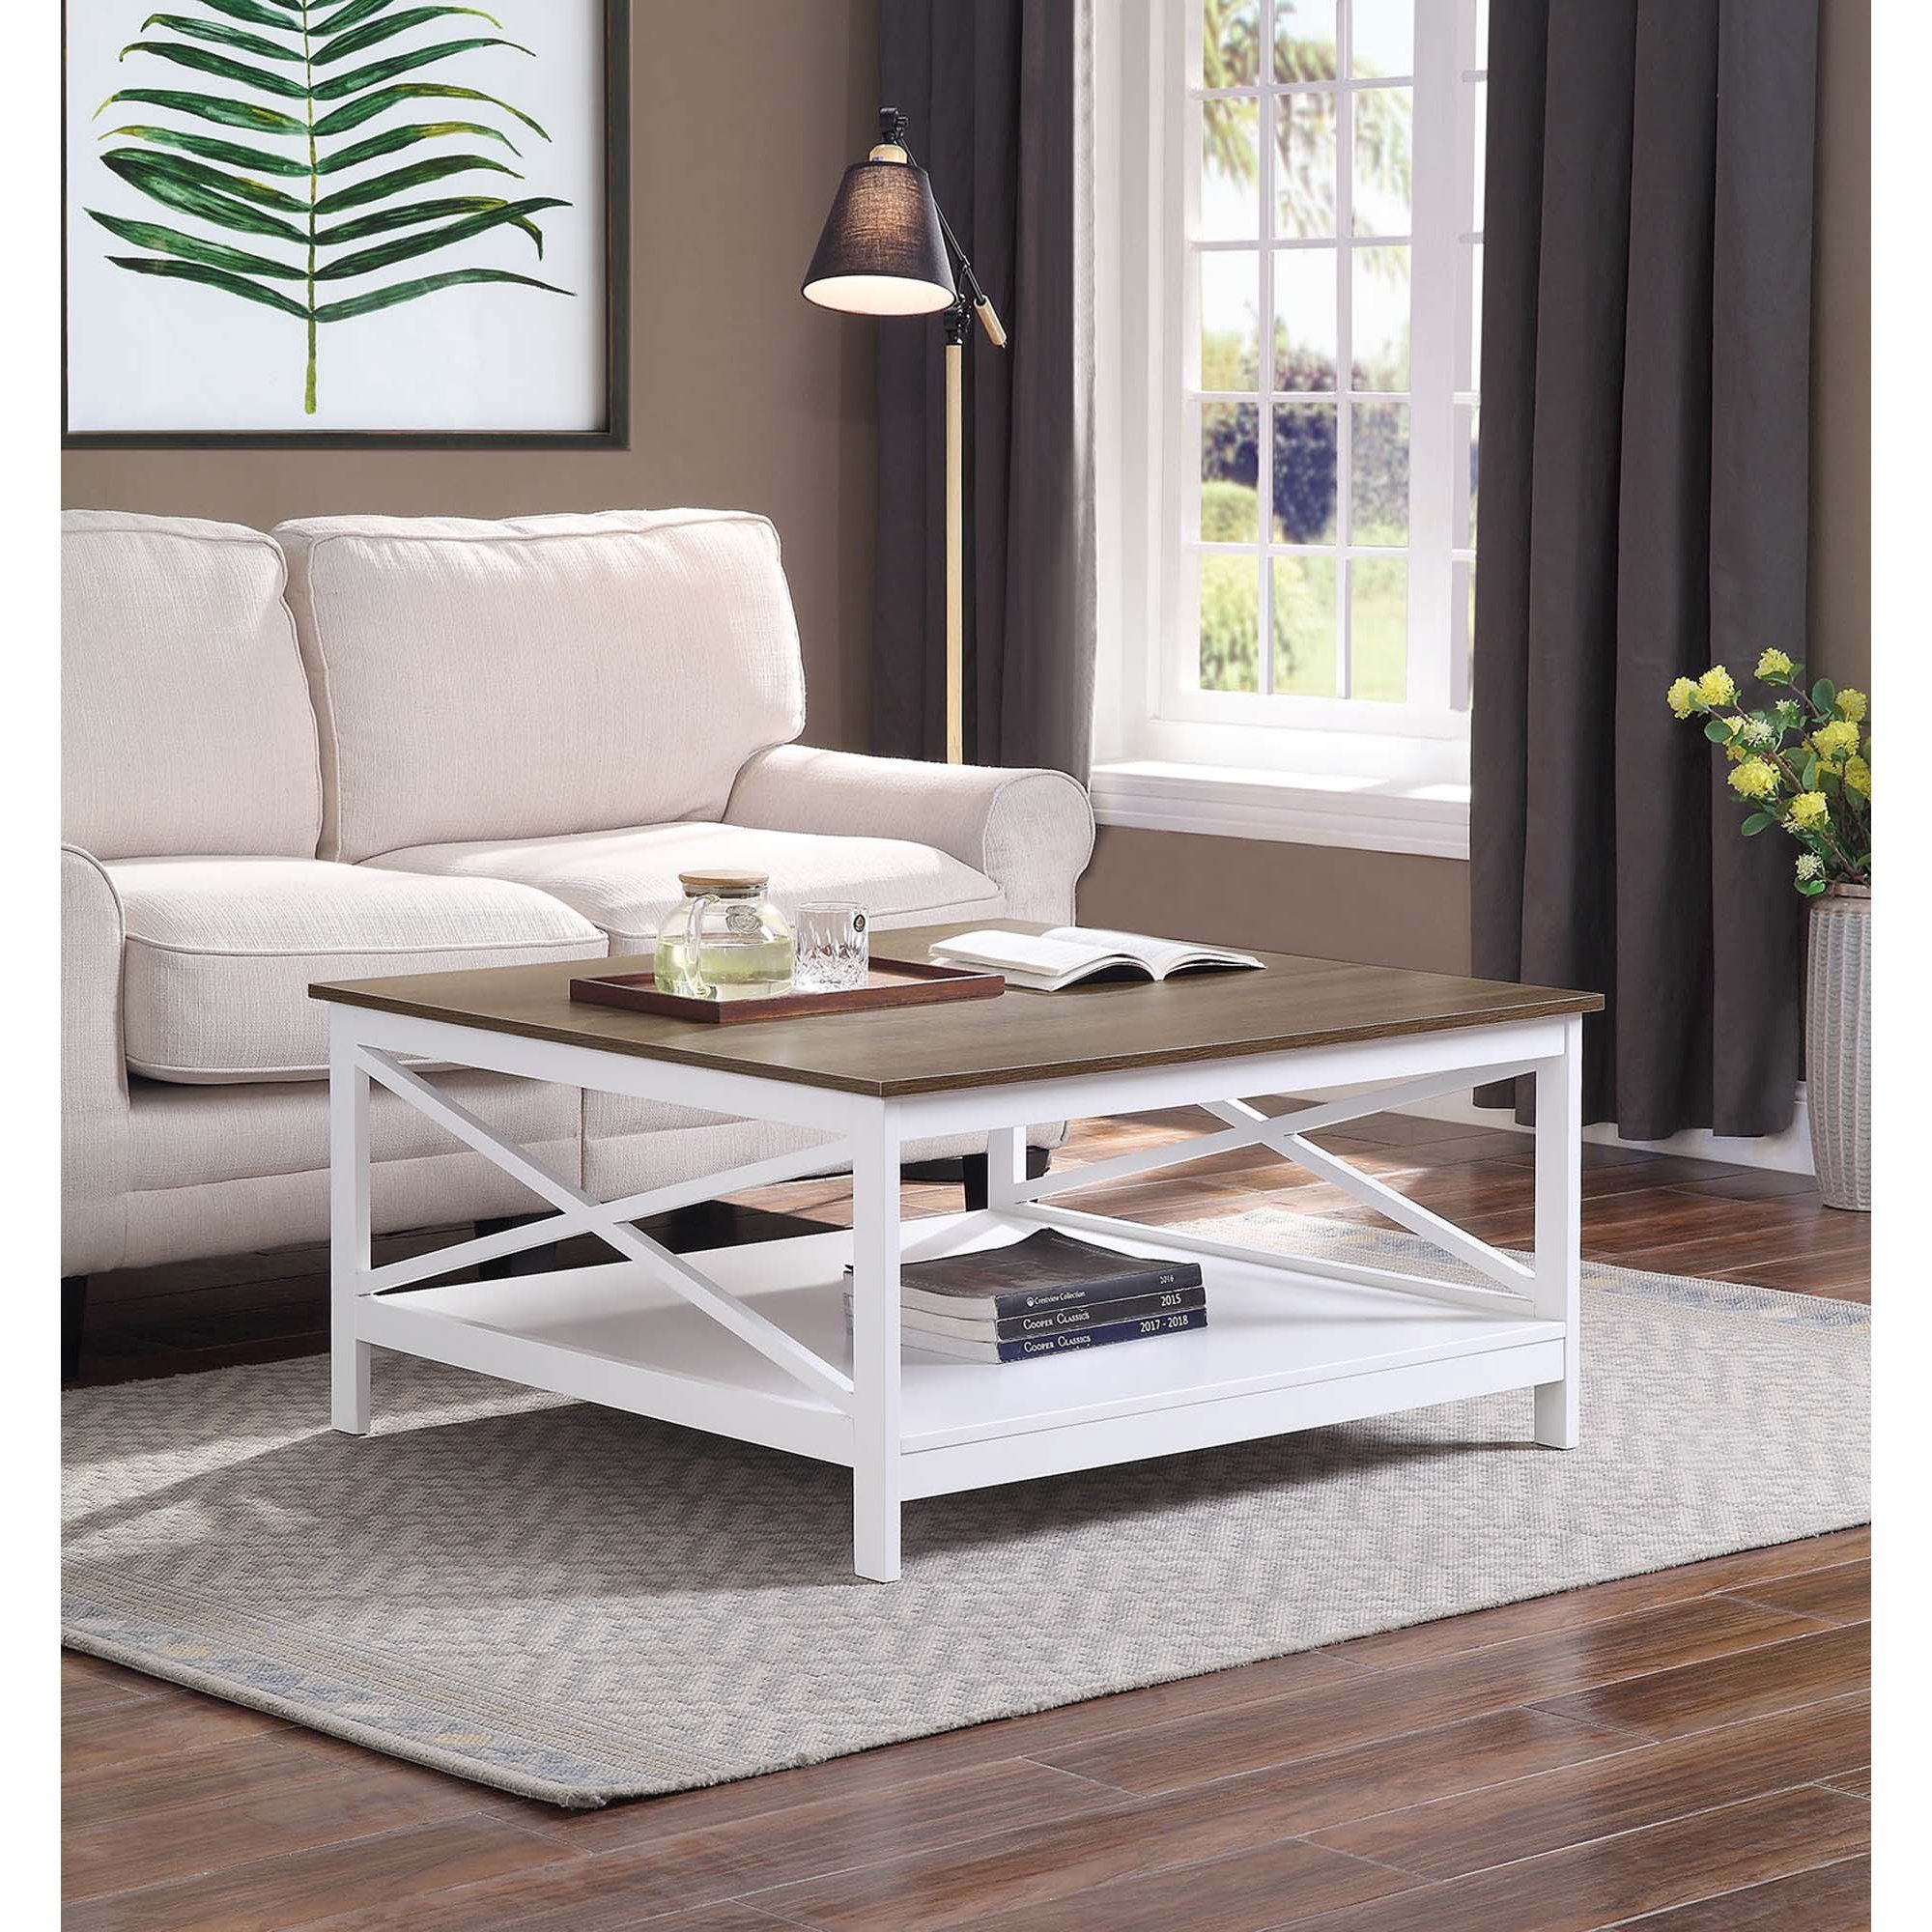 Convenience Concepts Oxford 36 Square Coffee Table Walmart Com In 2021 Coffee Table Coffee Table Square White Coffee Table Living Room [ 2000 x 2000 Pixel ]